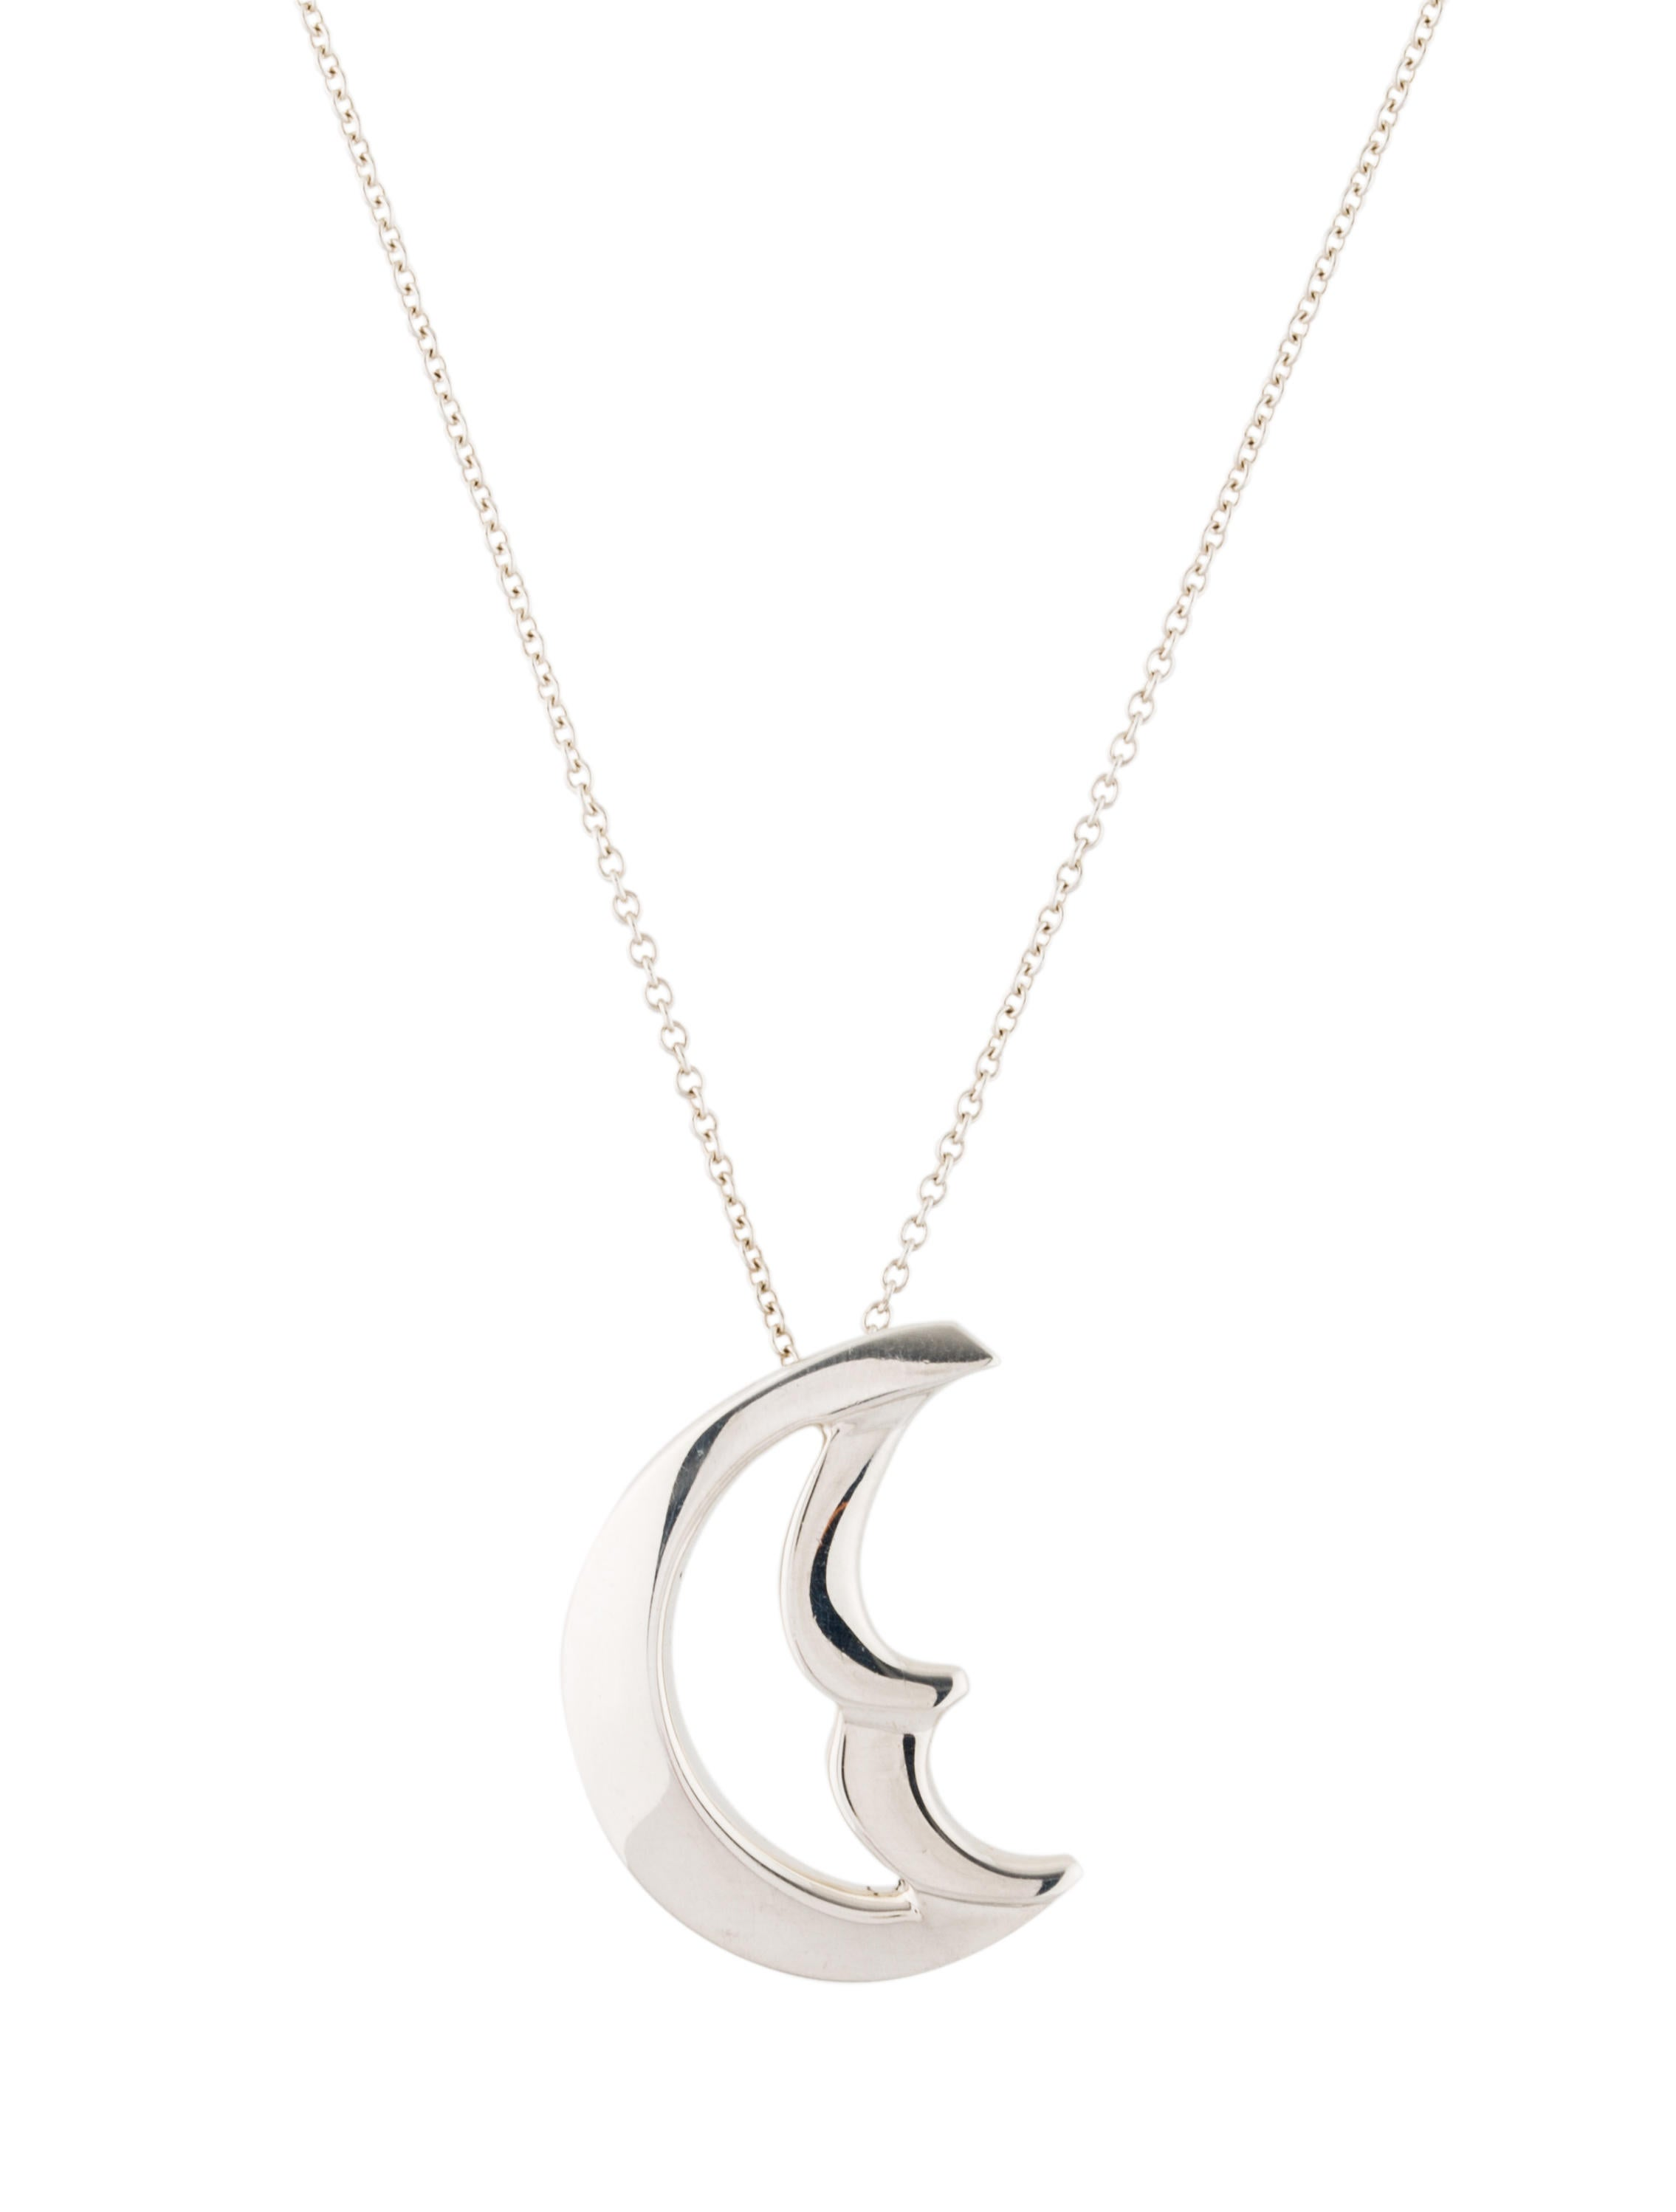 collar moon pendant necklace silver luna en half price plata necklaces p